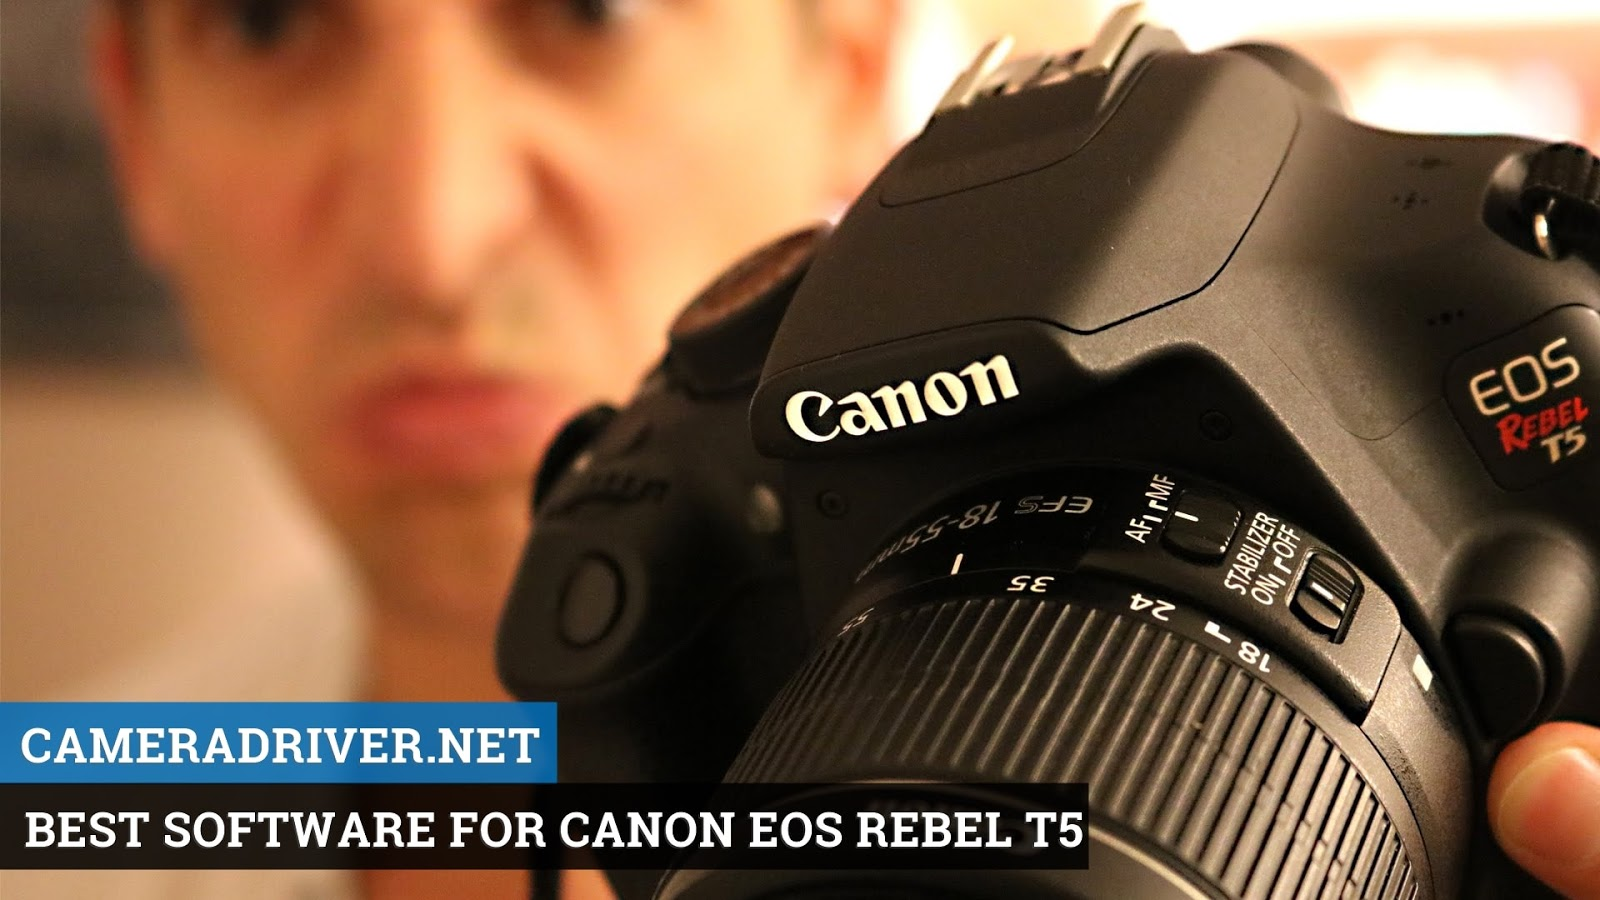 Best Software for Canon EOS Rebel T5